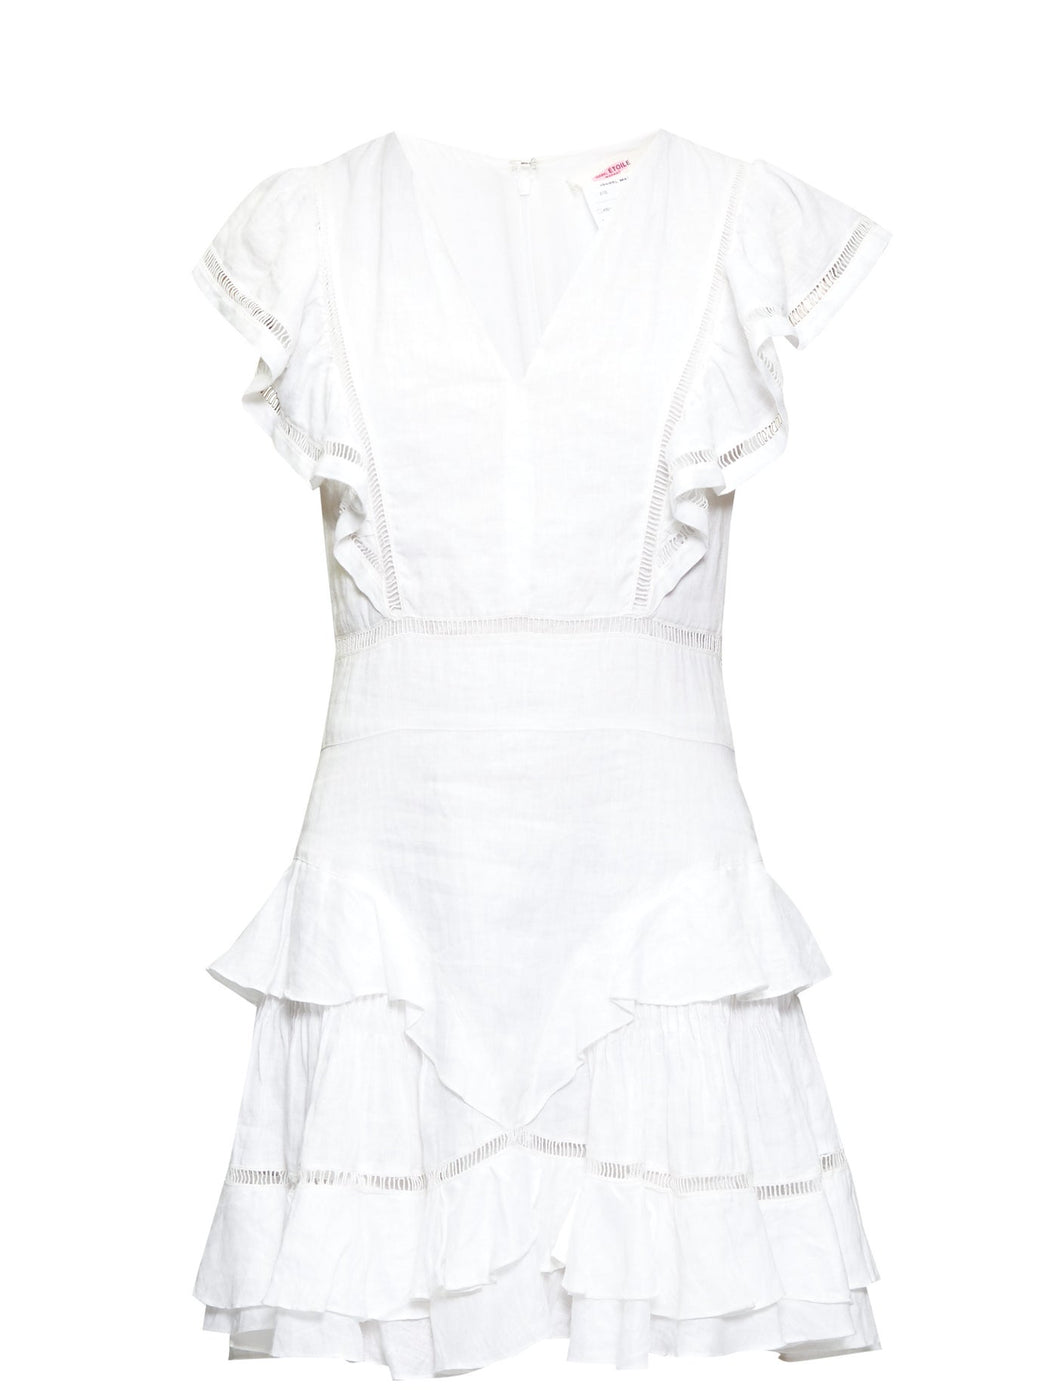 Isabel Marant Etoile-Audrey Linen Mini Dress-White